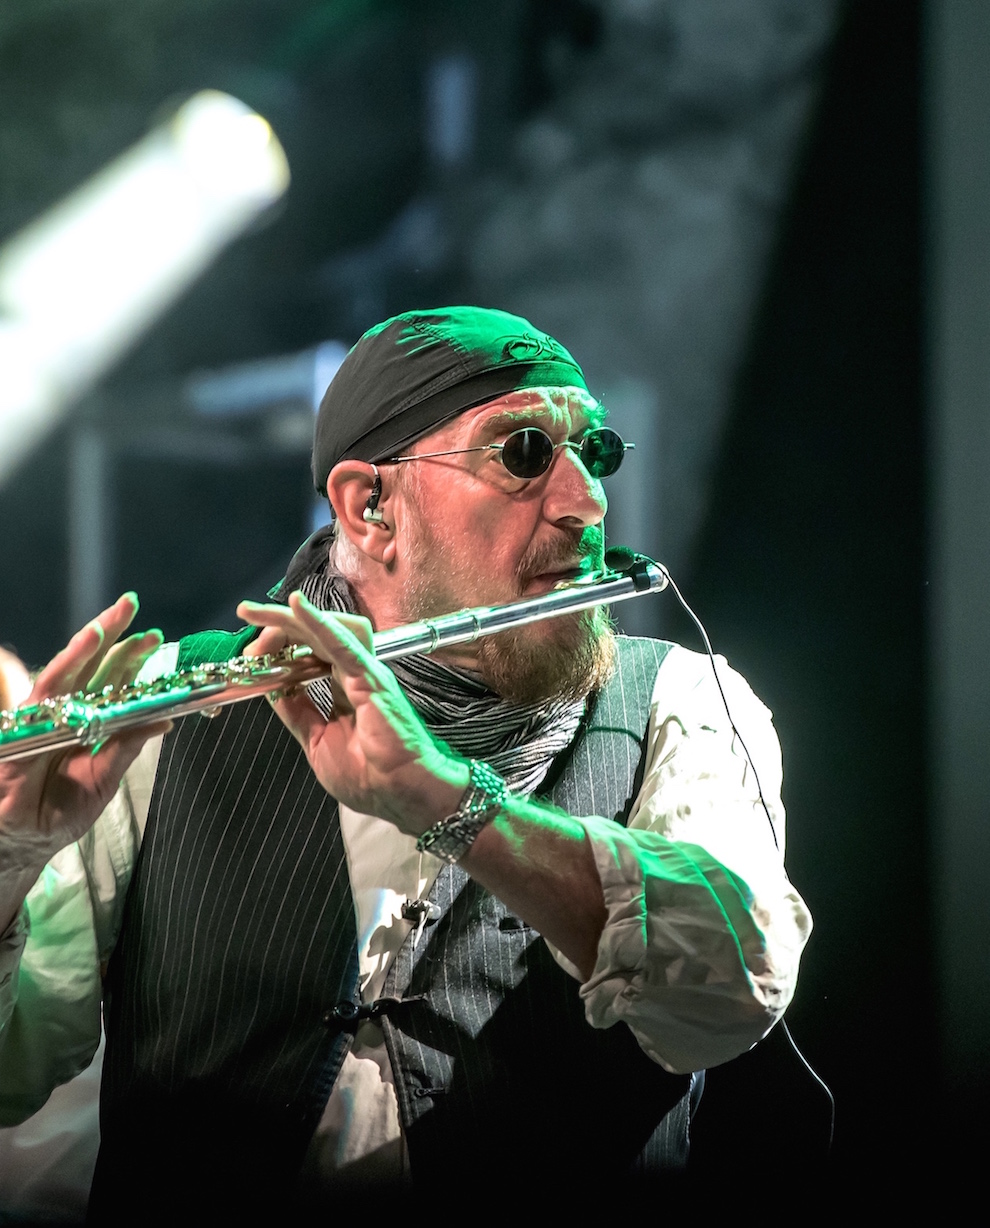 Jethro Tull by Ian Anderson (Photo credit: Nick Harrison)